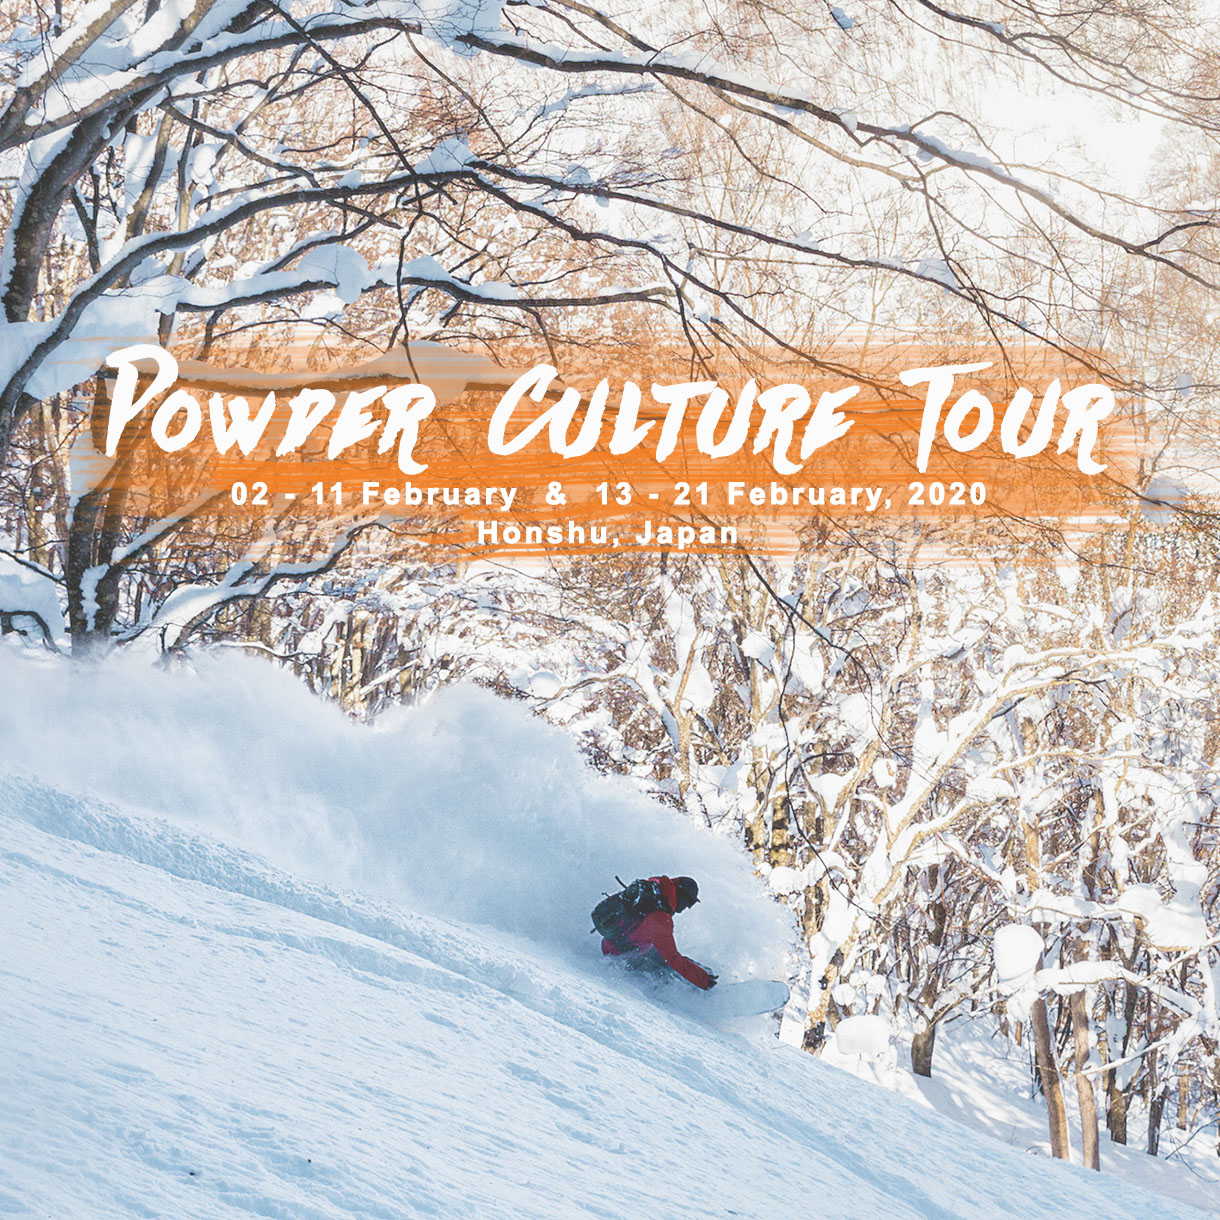 Powder Culture Tour 2020 First Tours